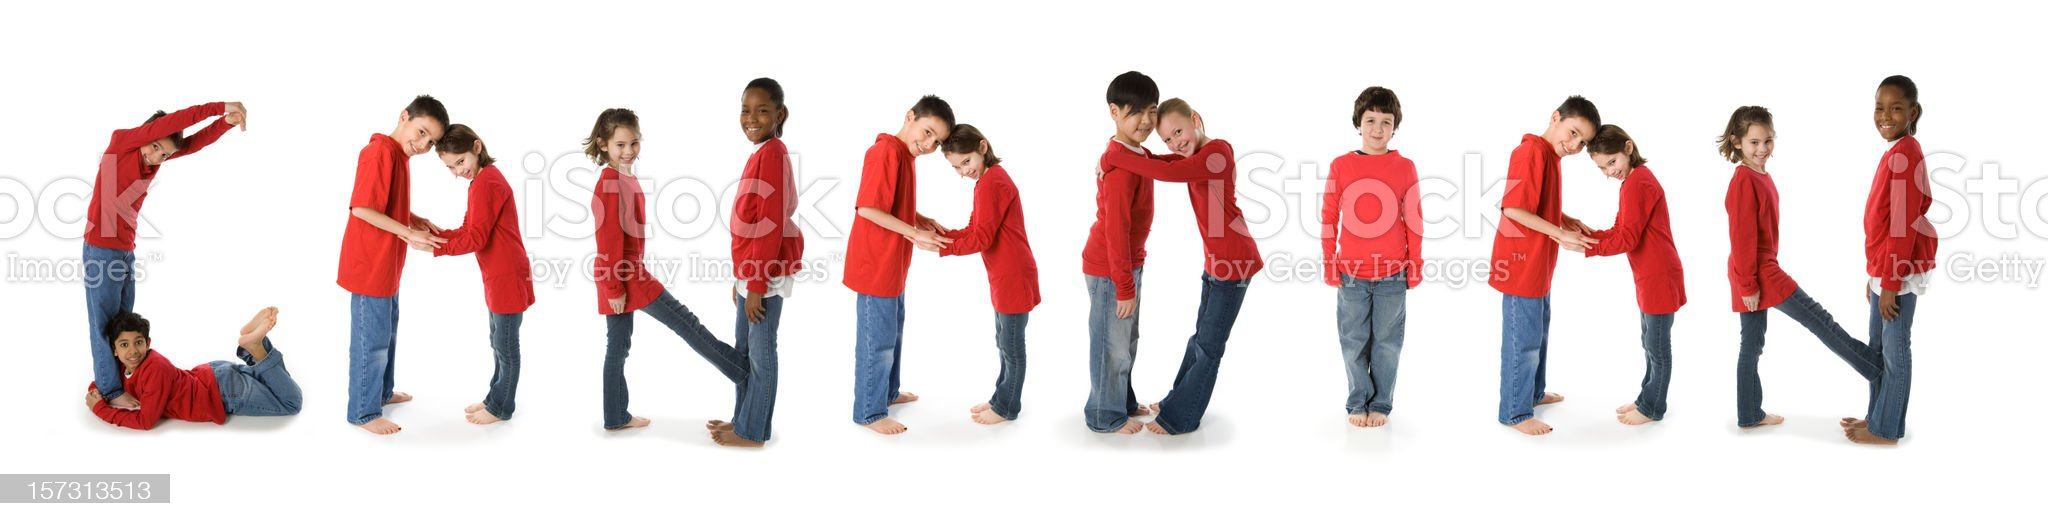 Ethnically Diverse Children Spell Canadian royalty-free stock photo